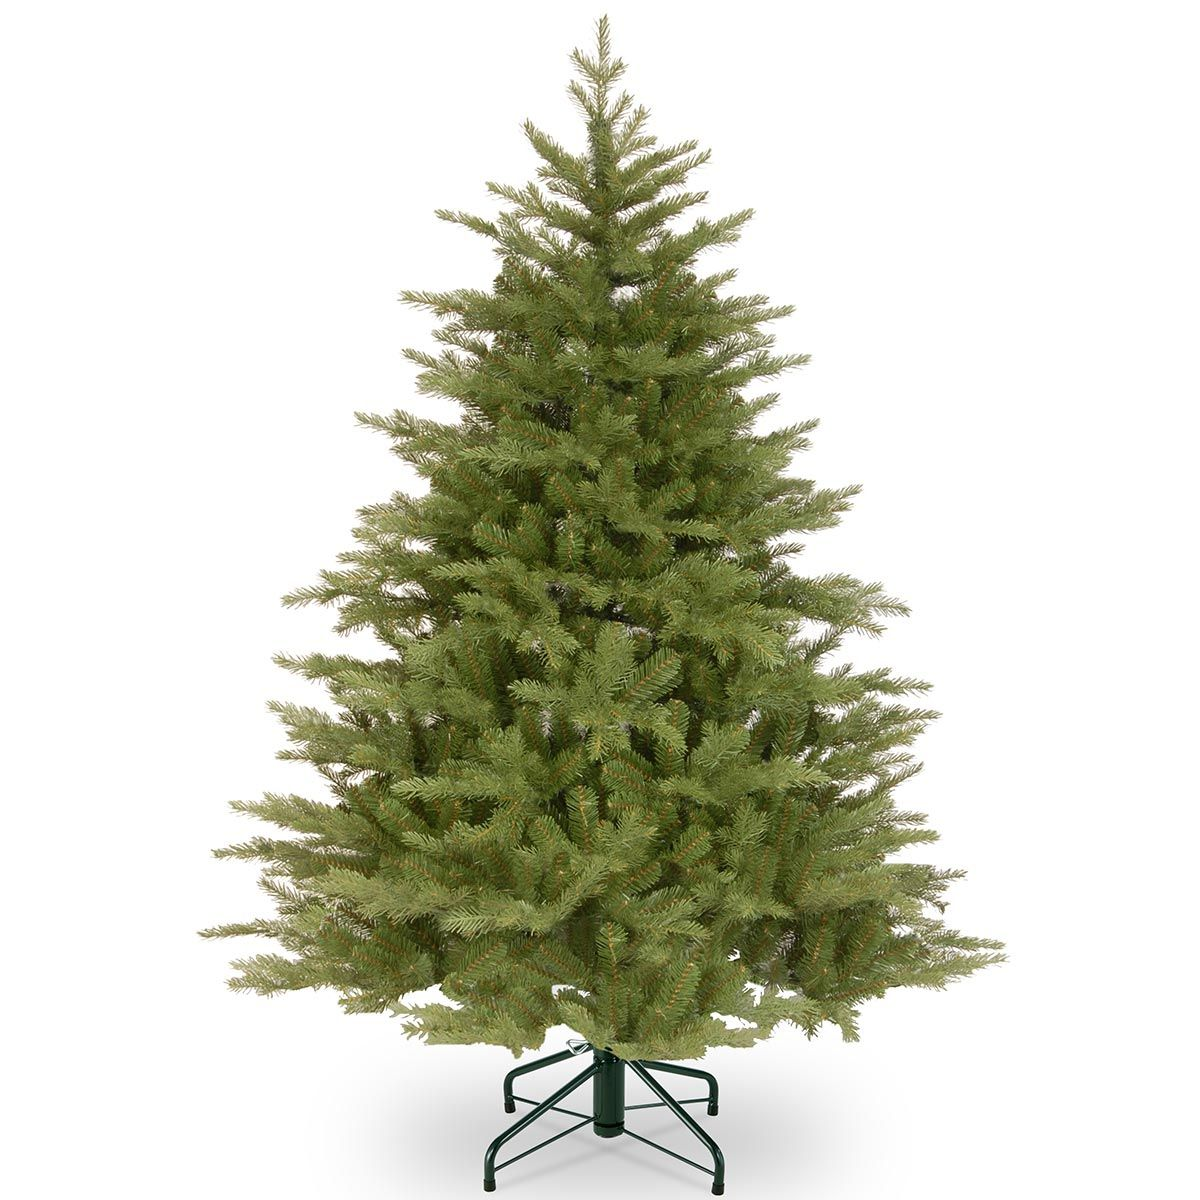 5 5ft Nordic Spruce Feel Real Memory Shape Artificial Christmas Tree Artificial Christmas Tree Beautiful Christmas Trees Quality Garden Furniture